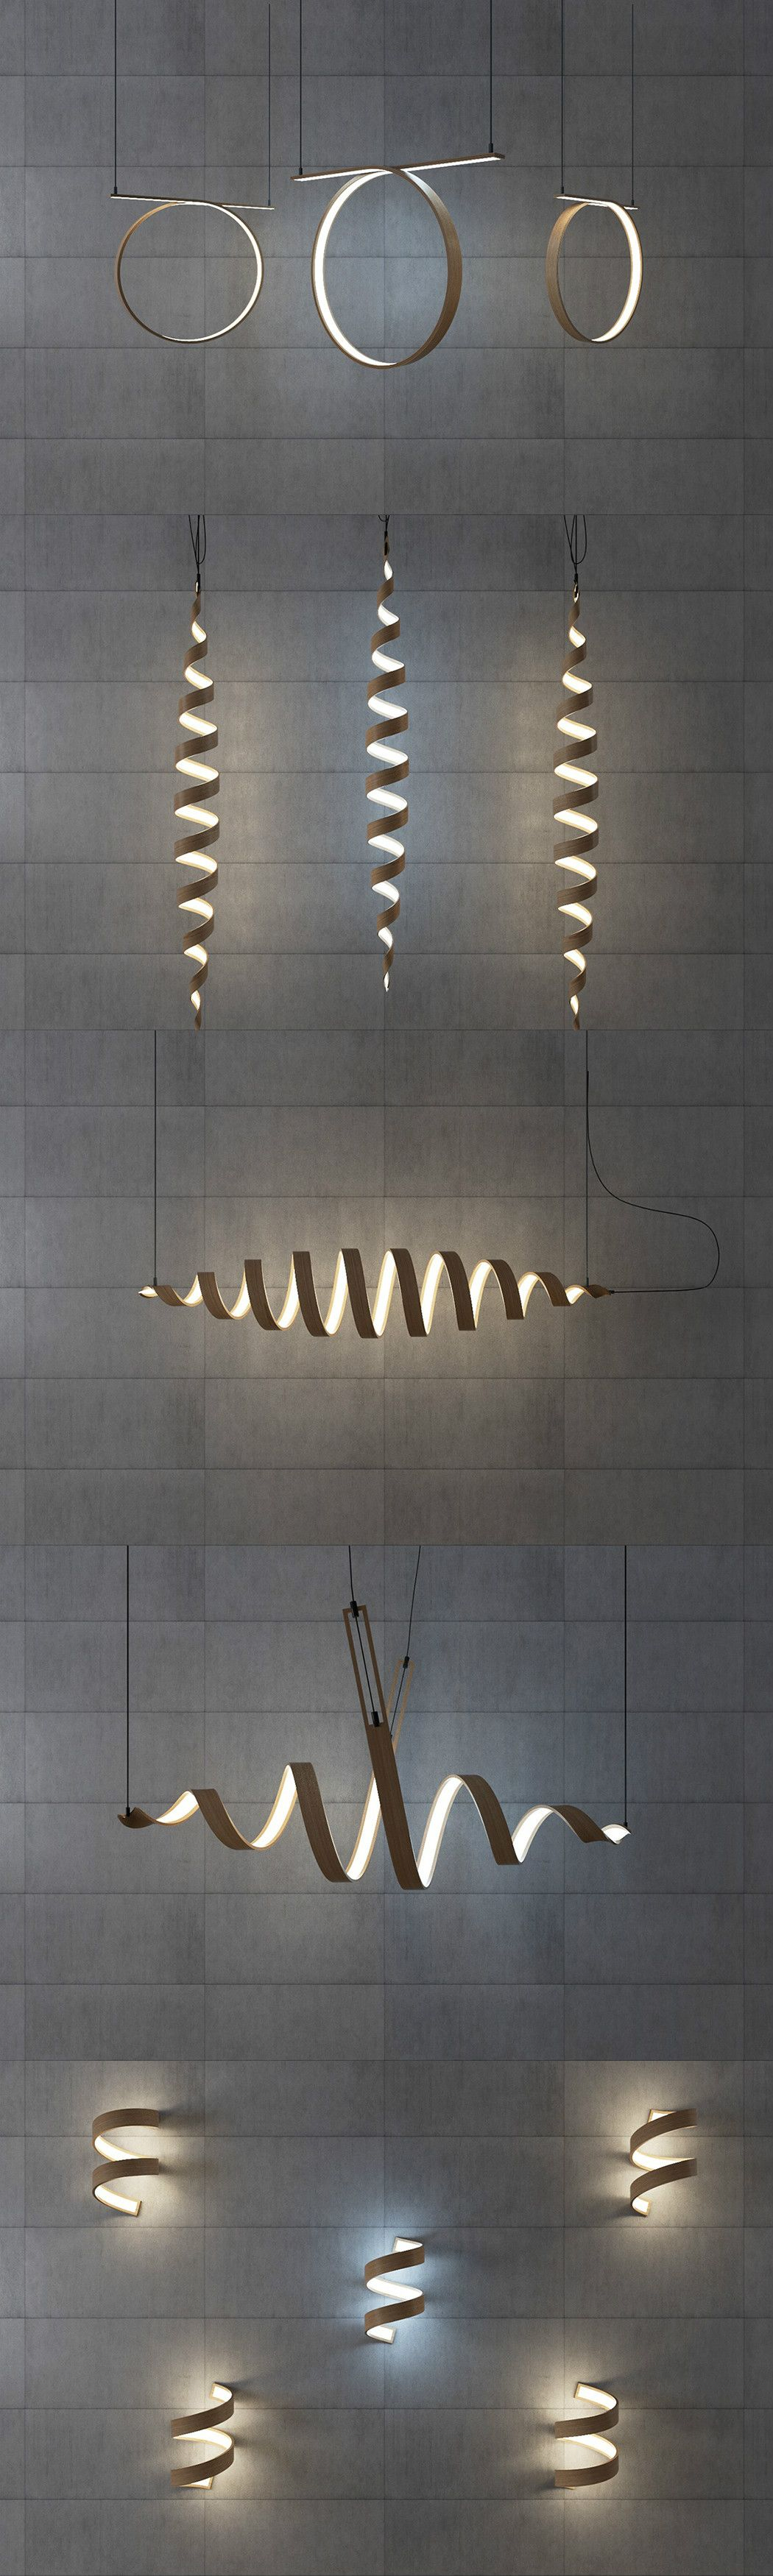 A TWIST OF LIGHT... Read more at Yanko Design | Design Ideas ...